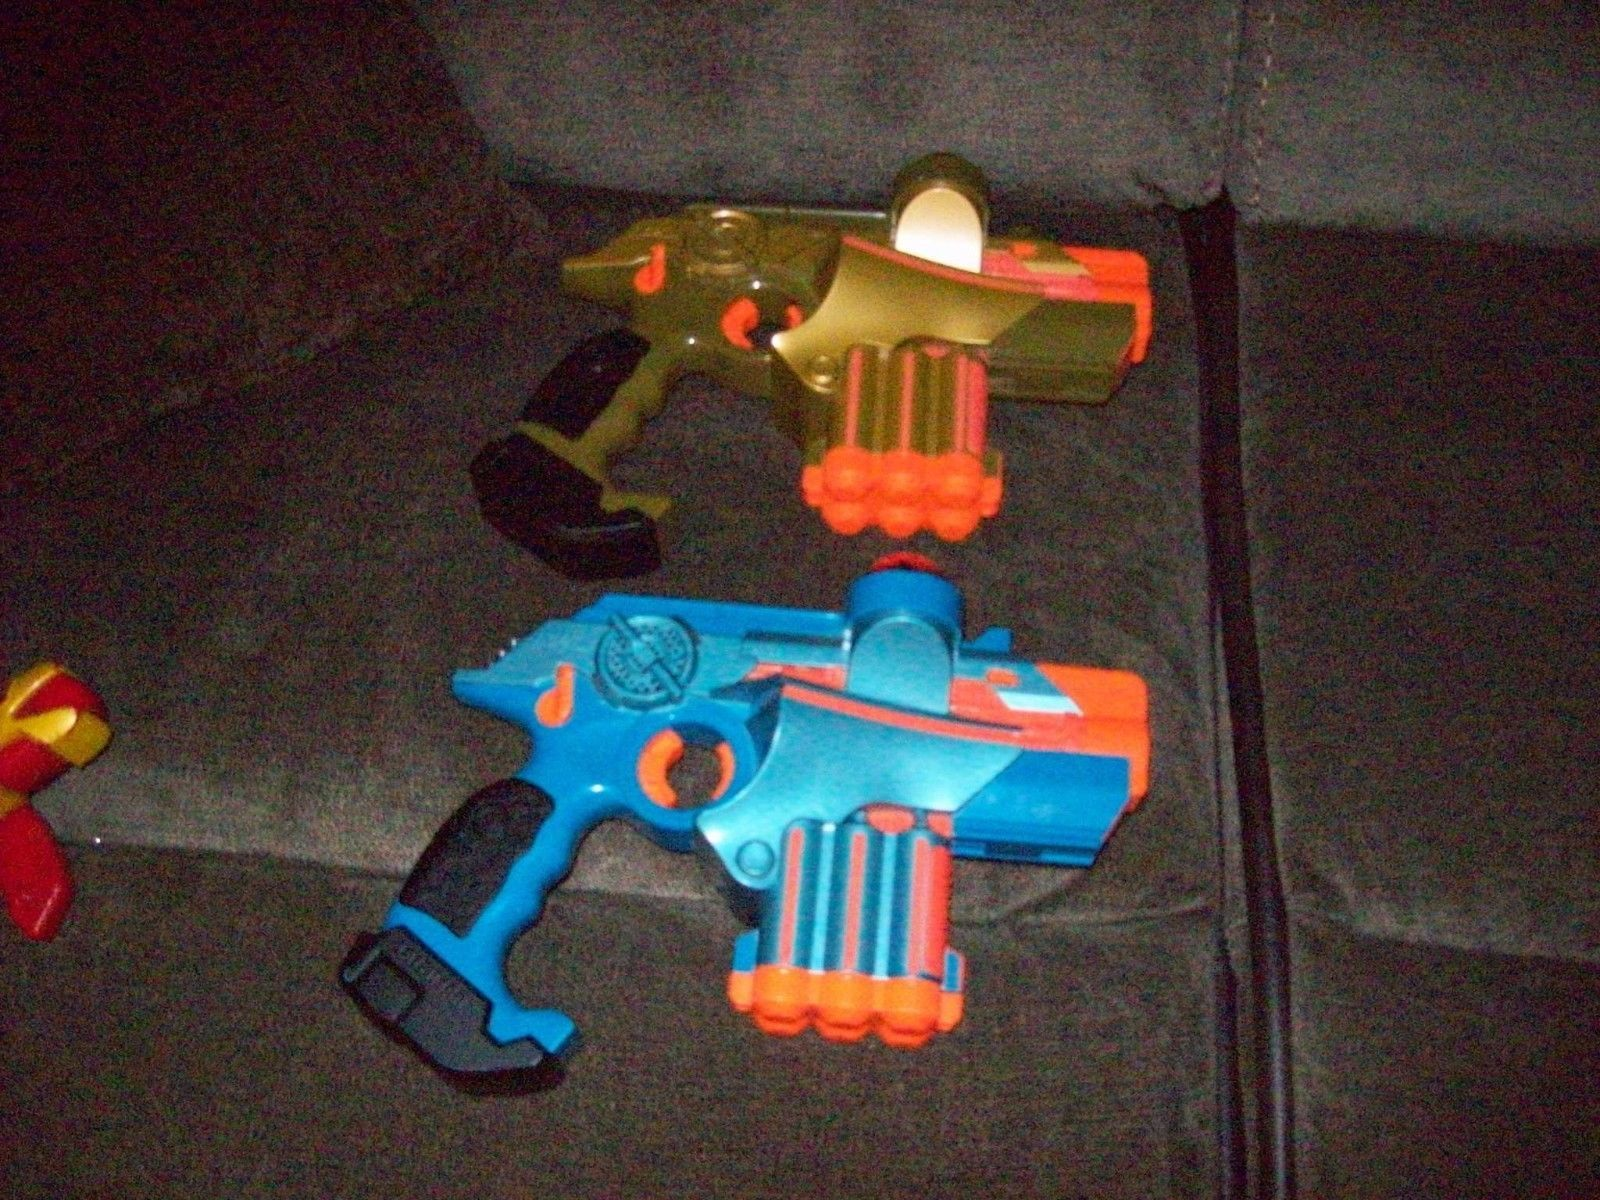 2 TIGER LAZER TAG GUNS PHOENIX LTX Blue And Gold